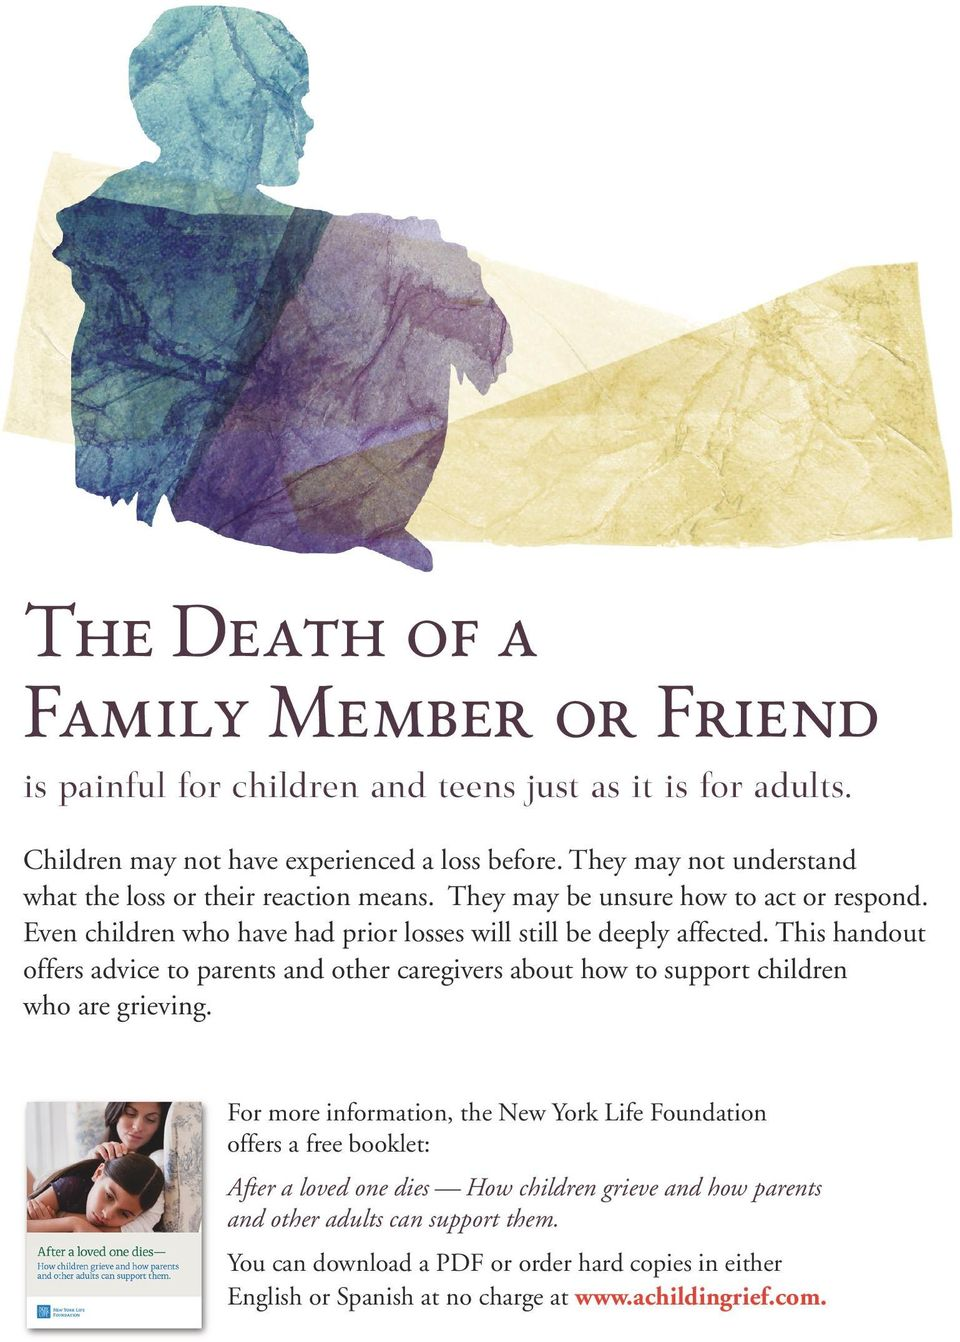 This handout offers advice to parents and other caregivers about how to support children who are grieving.